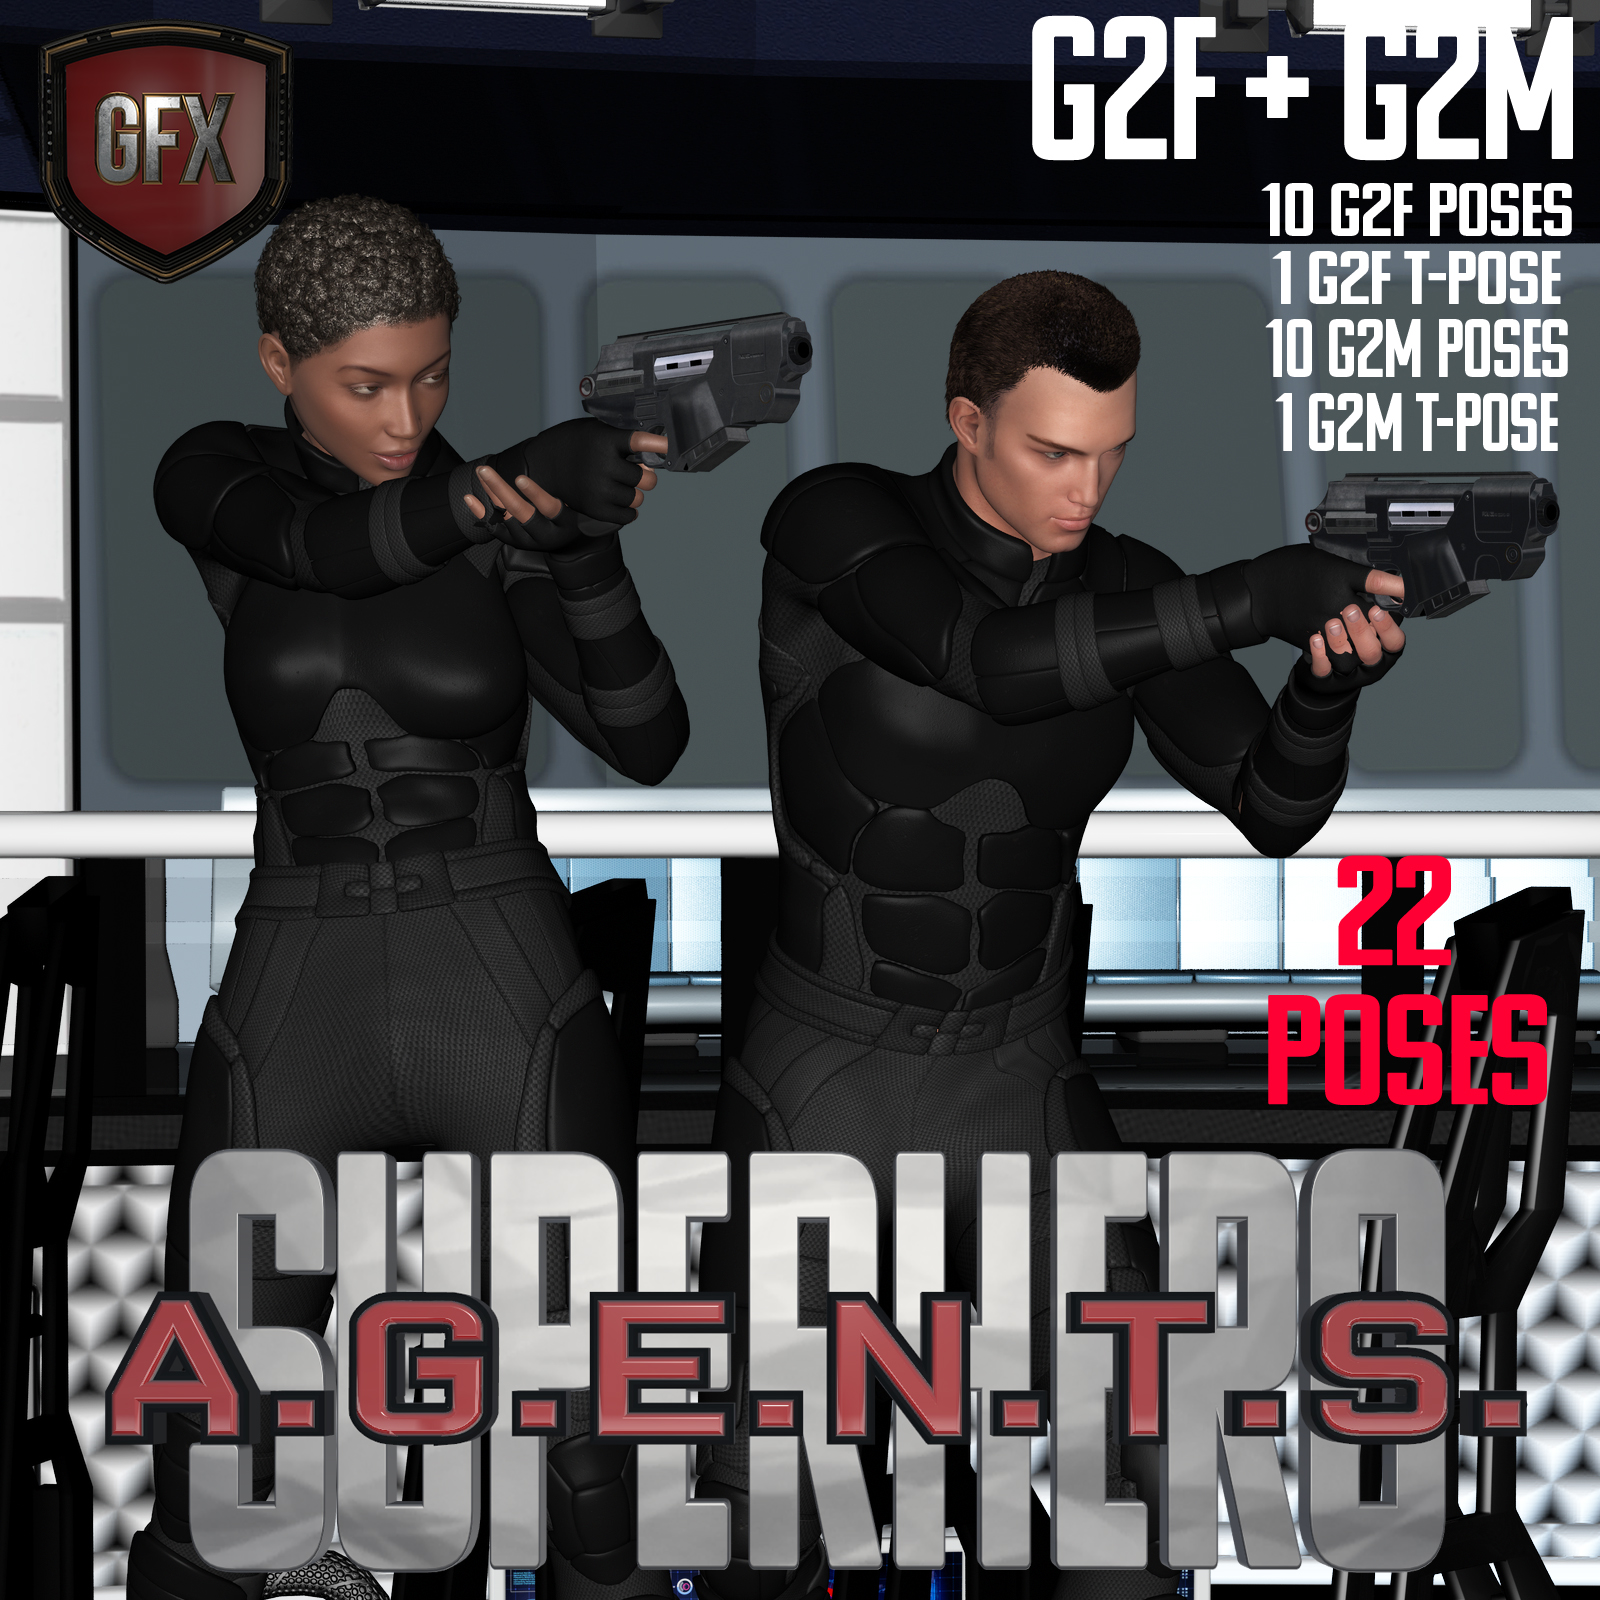 SuperHero Agents for G2F and G2M Volume 1